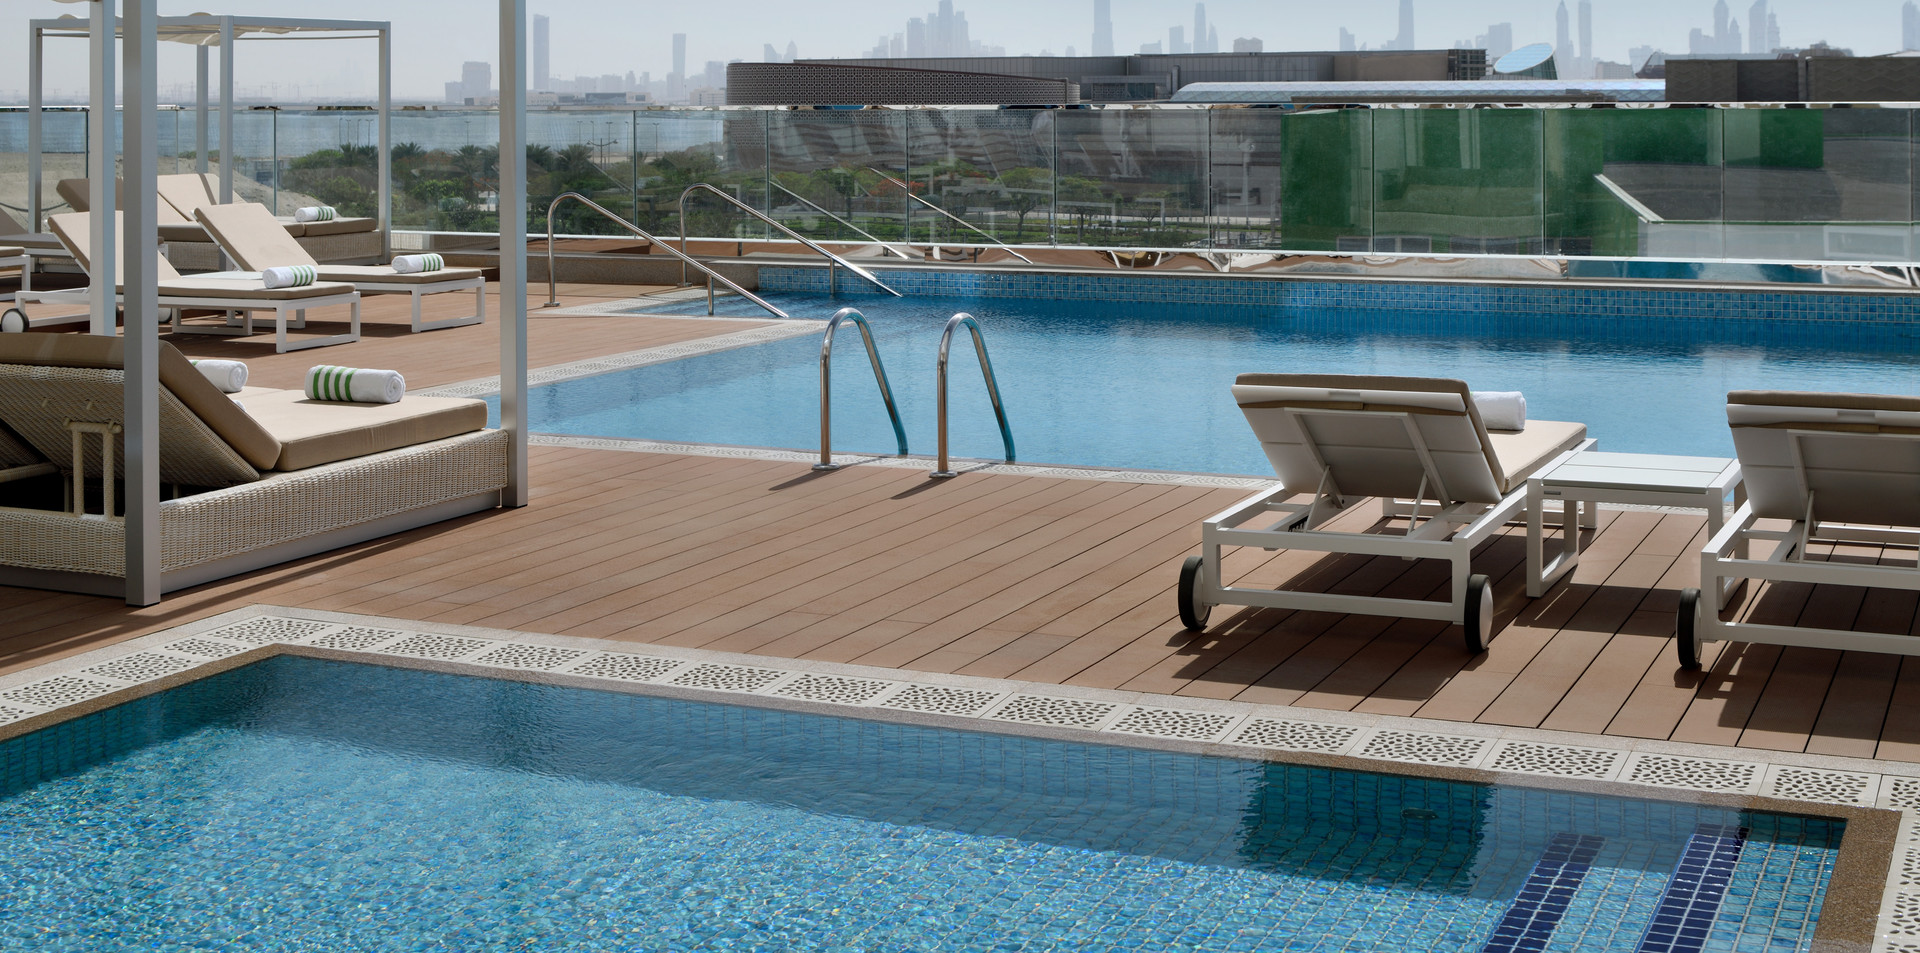 Pool at Holiday Inn Dubai Festival City